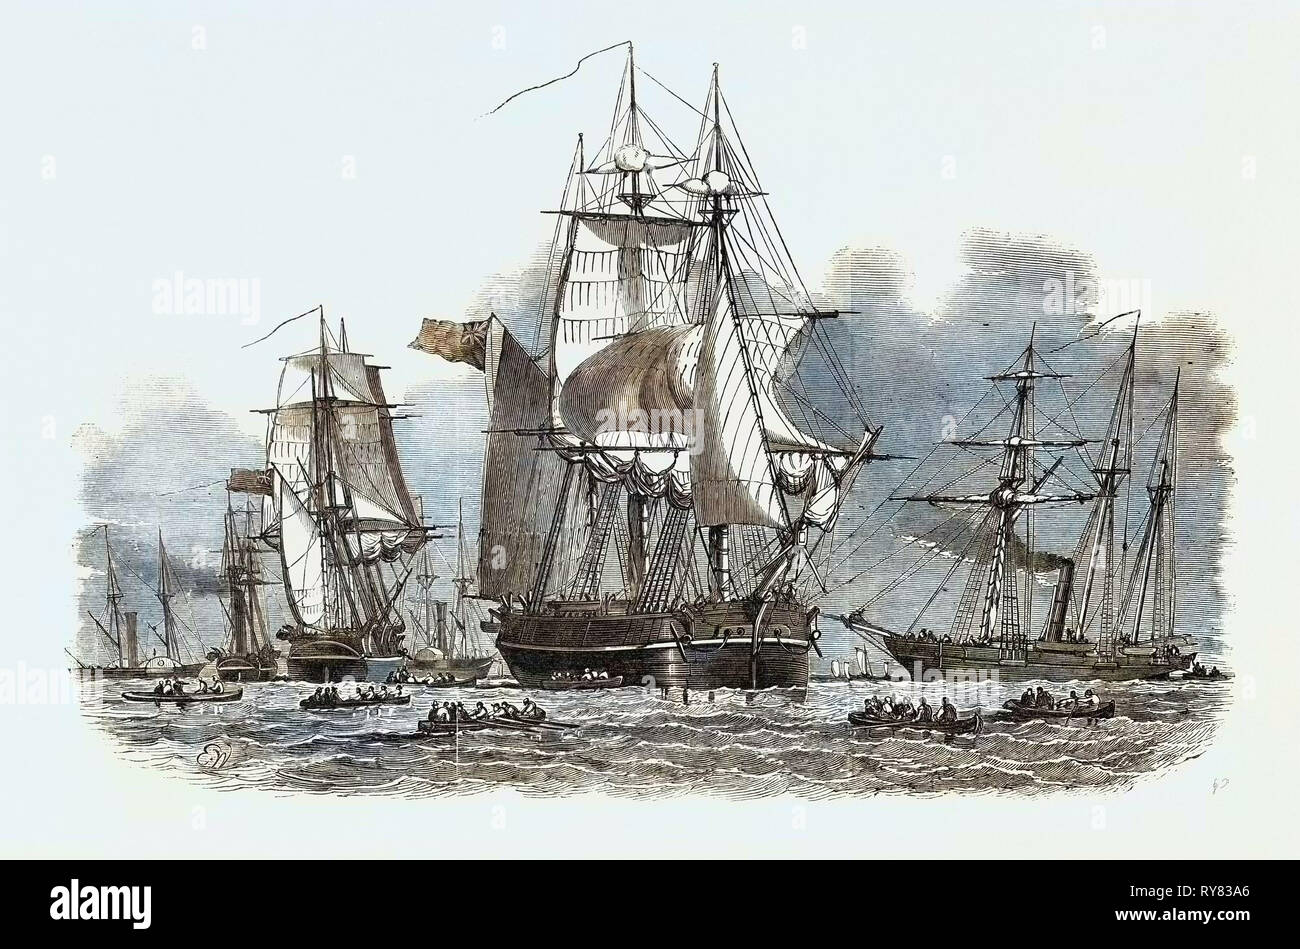 Captain Austin's Expedition, Sent in Search of Sir John Franklin - Stock Image